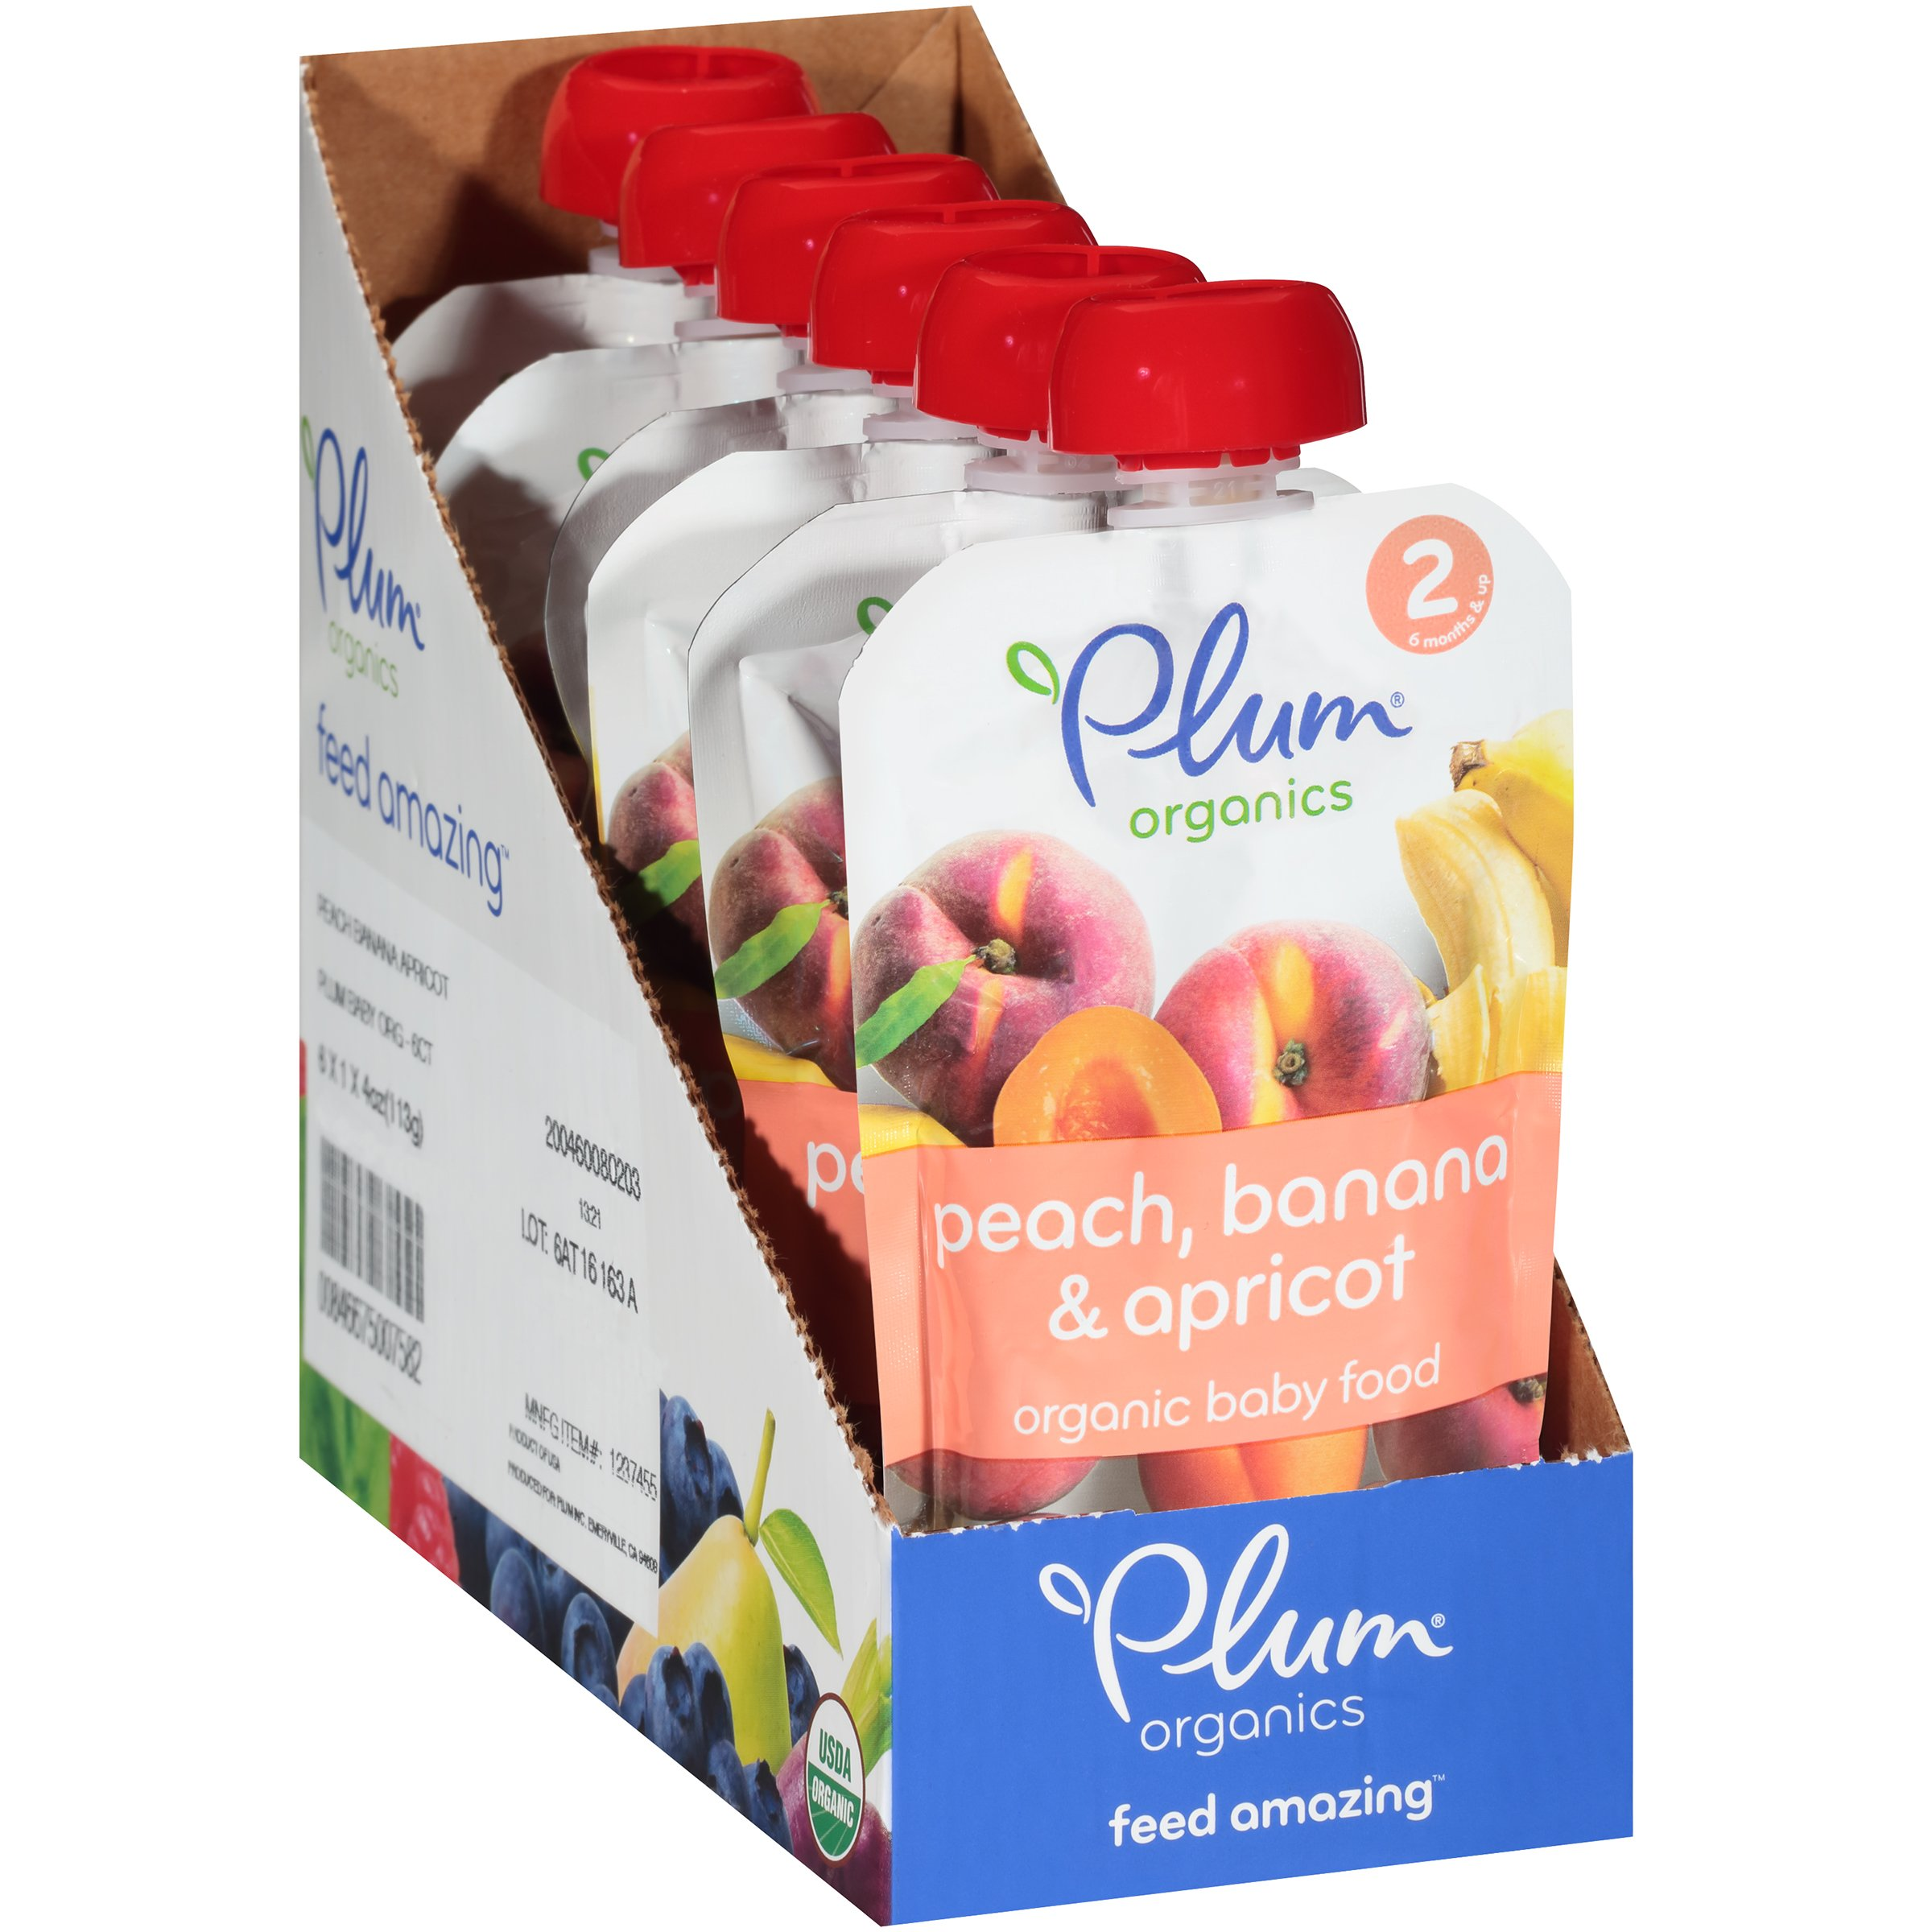 Plum Organics Baby Stage 2 Food, Peach, Banana and Apricot, 4 Ounce (Pack of 6)